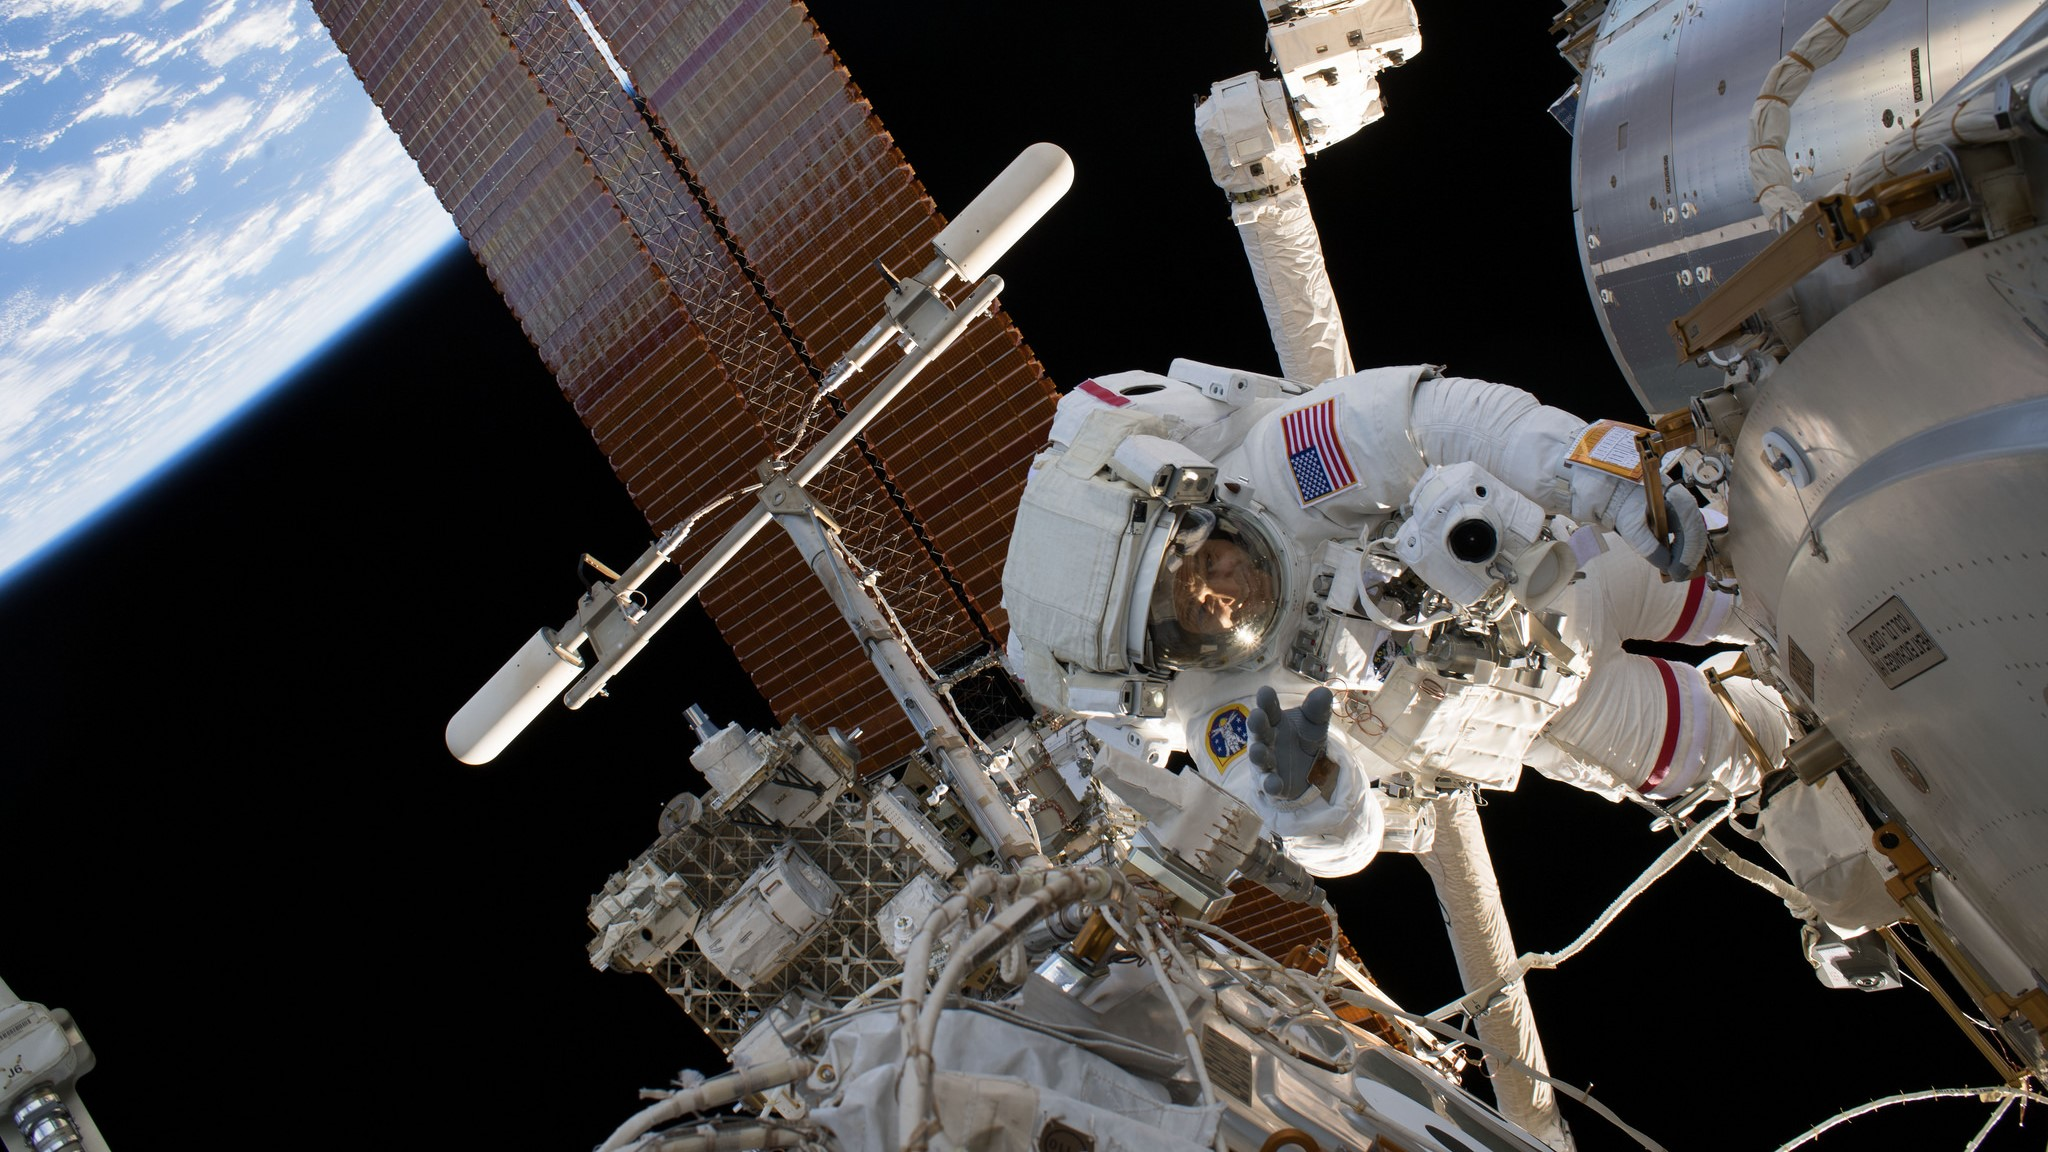 """NASA astronaut Ricky Arnold, the lead spacewalker for U.S. EVA-51, works outside the International Space Station with NASA's Drew Feustel, not pictured, to install several high-definition cameras to provide """"enhanced views"""" of the upcoming commercial crew flights by SpaceX and Boeing. Credit: NASA"""